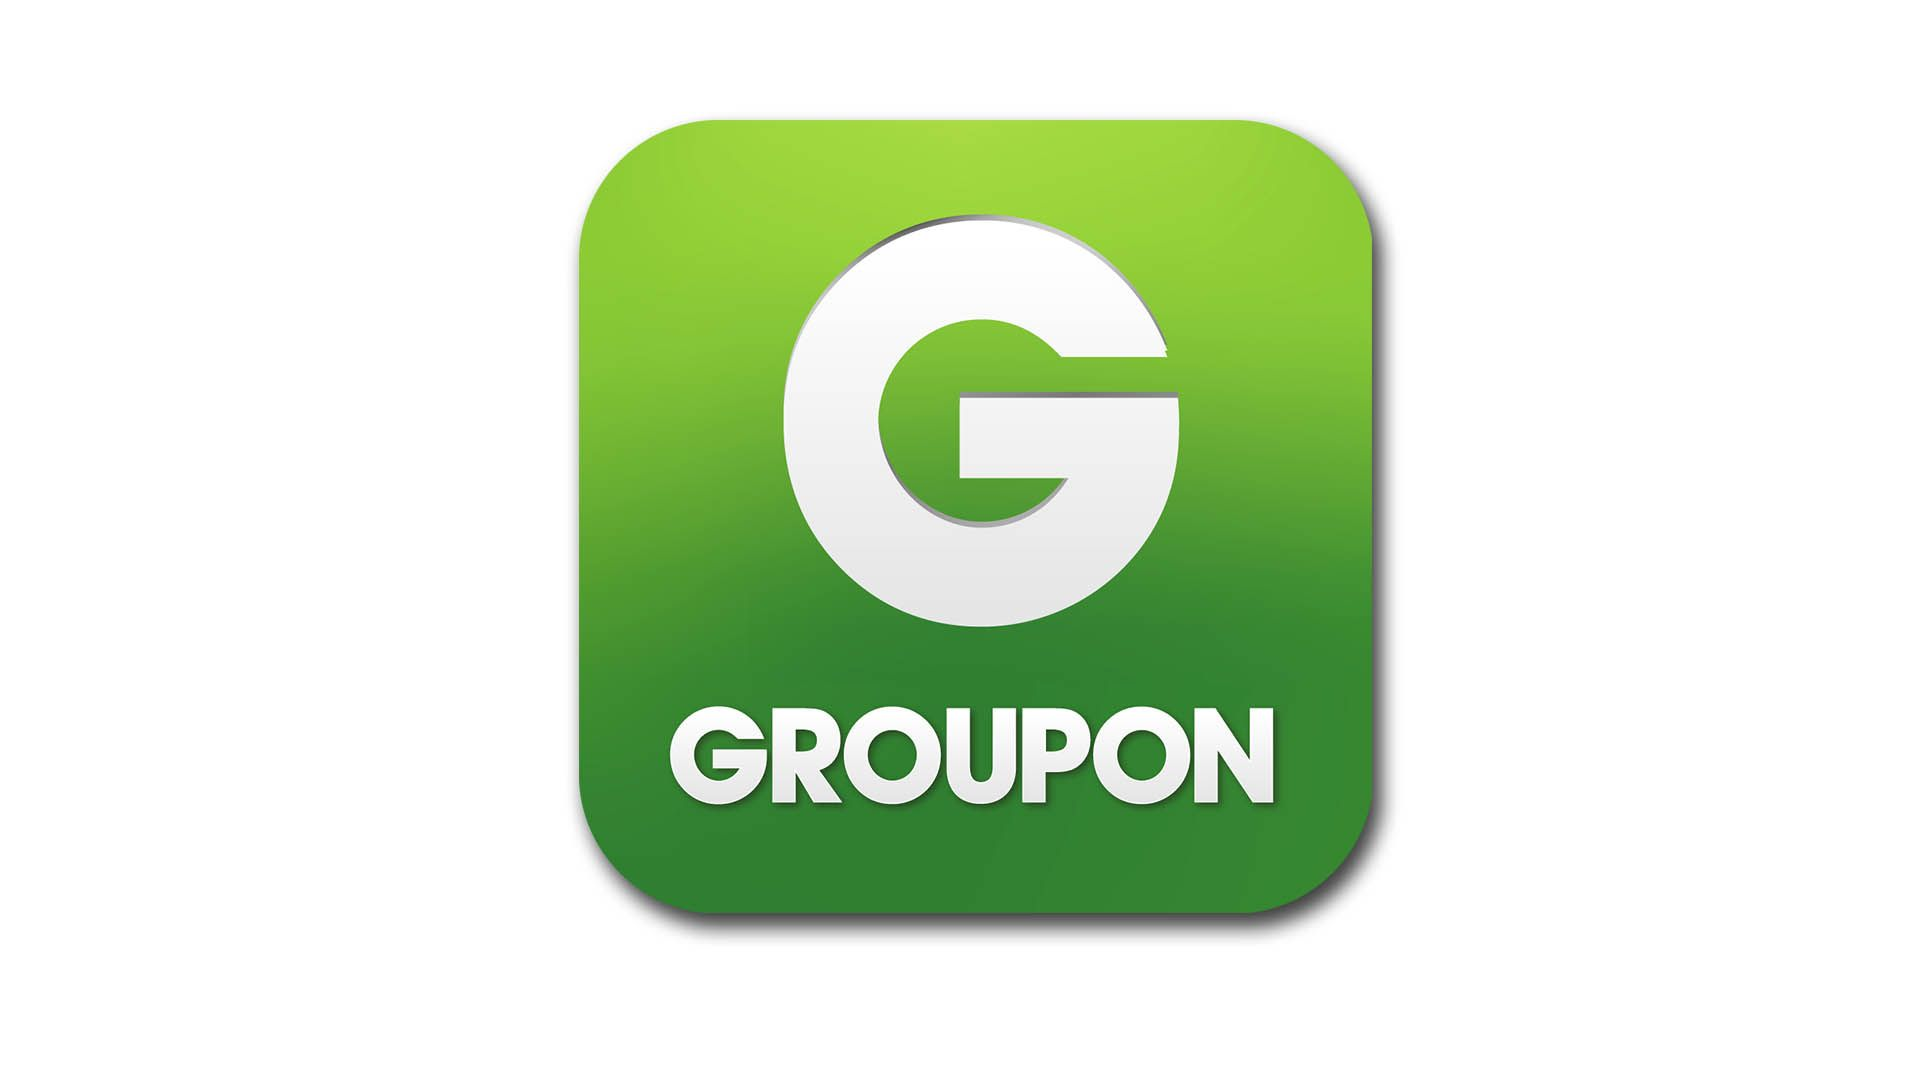 De 0 à 1 milliard de dollars en 16 mois (Groupon) #GrowthHacking #WEbMarketing #FormationGrowthHacking #CentreDeFormationFrance #TunnelAARRR #AARRR #SocialMedia #CommunityManagement #SEO